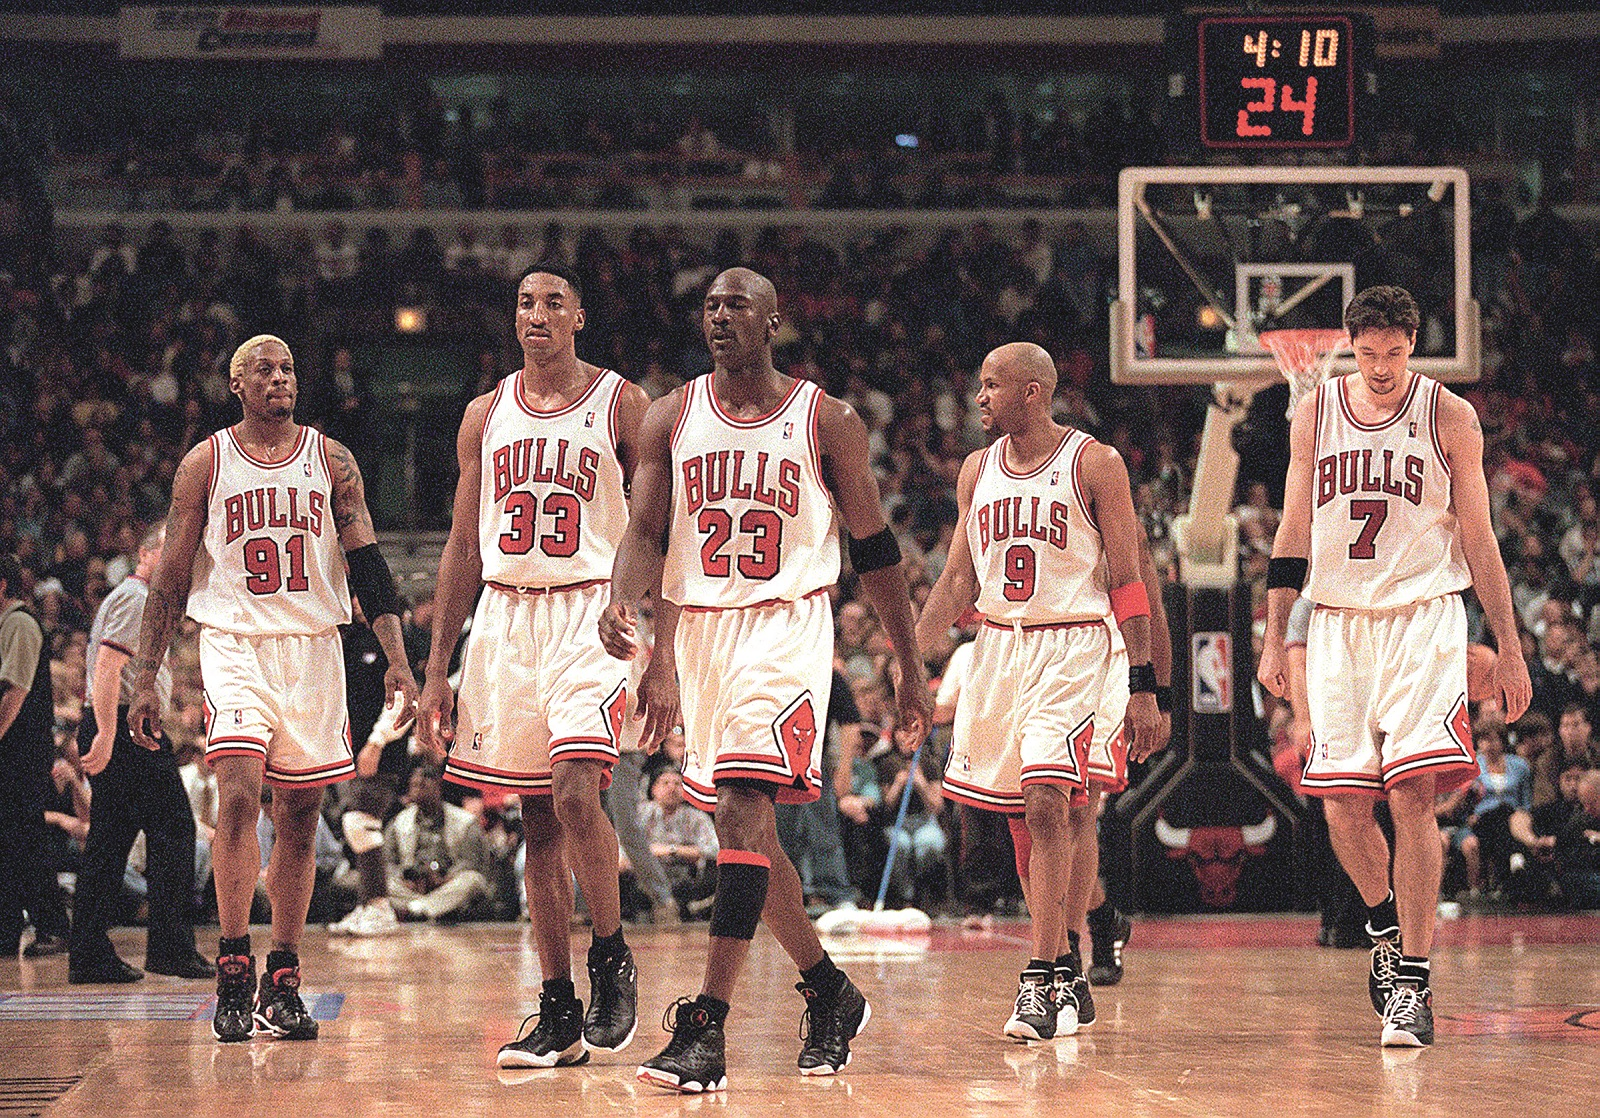 April 24, 1998 - Chicago, IL, USA - From left, Dennis Rodman, Scottie Pippen, Michael Jordan, Ron Harper and Toni Kukoc were big parts of Bulls teams that won three straight NBA titles from 1996 to 1998. Jordan and Pippen were members of the first ''three-peat'' team, which won titles from 1991 to 1993.,Image: 217373559, License: Rights-managed, Restrictions: , Model Release: no, Credit line: Nuccio Dinuzzo / Zuma Press / Profimedia